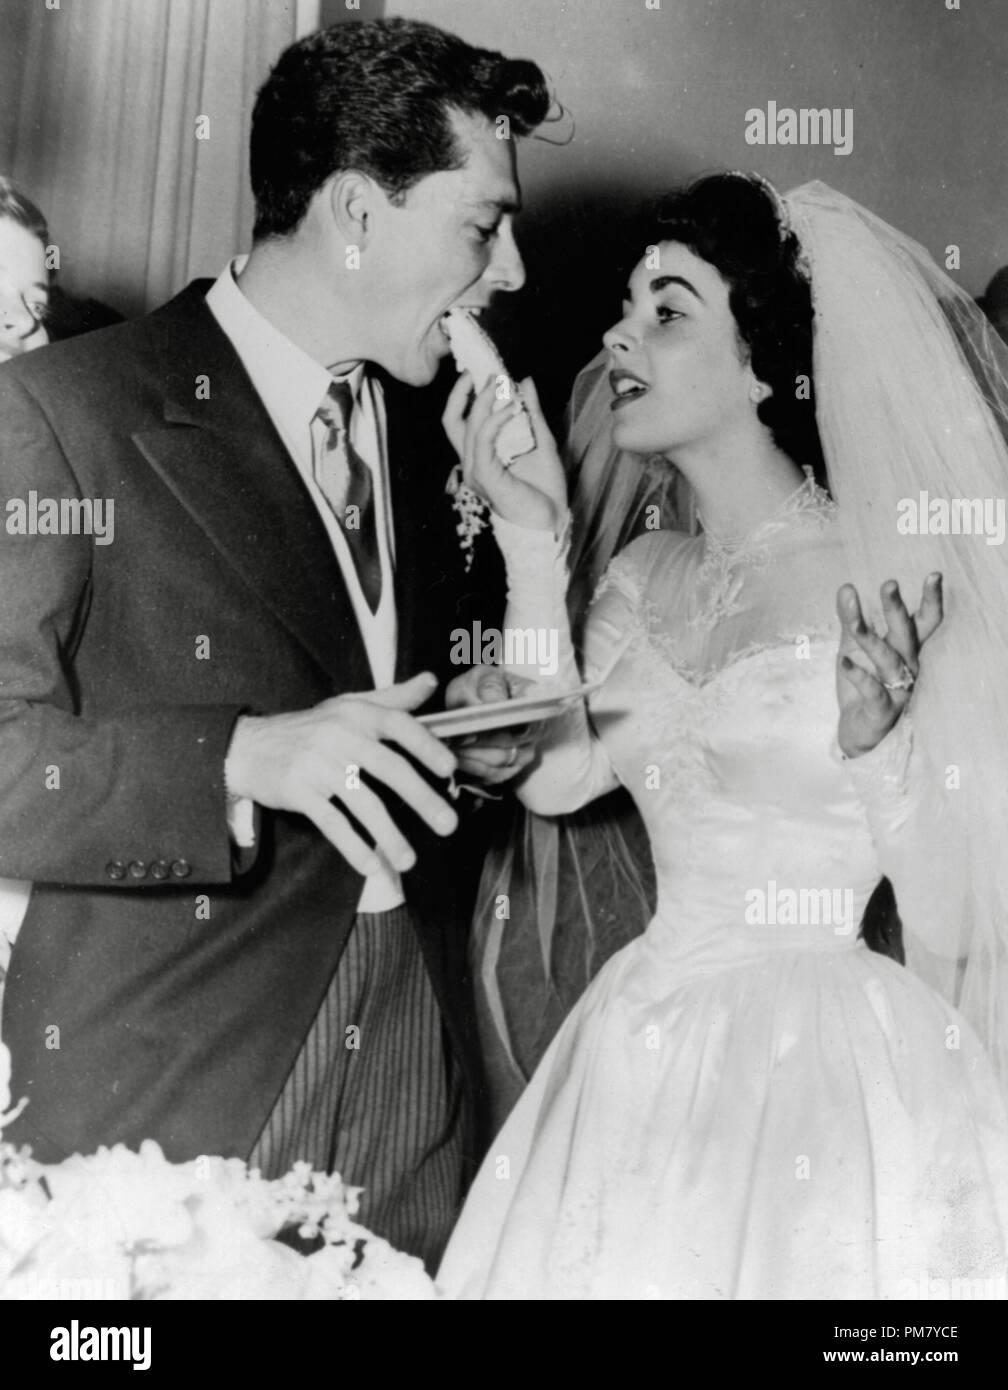 1950s 1940s Wedding High Resolution Stock Photography And Images Alamy